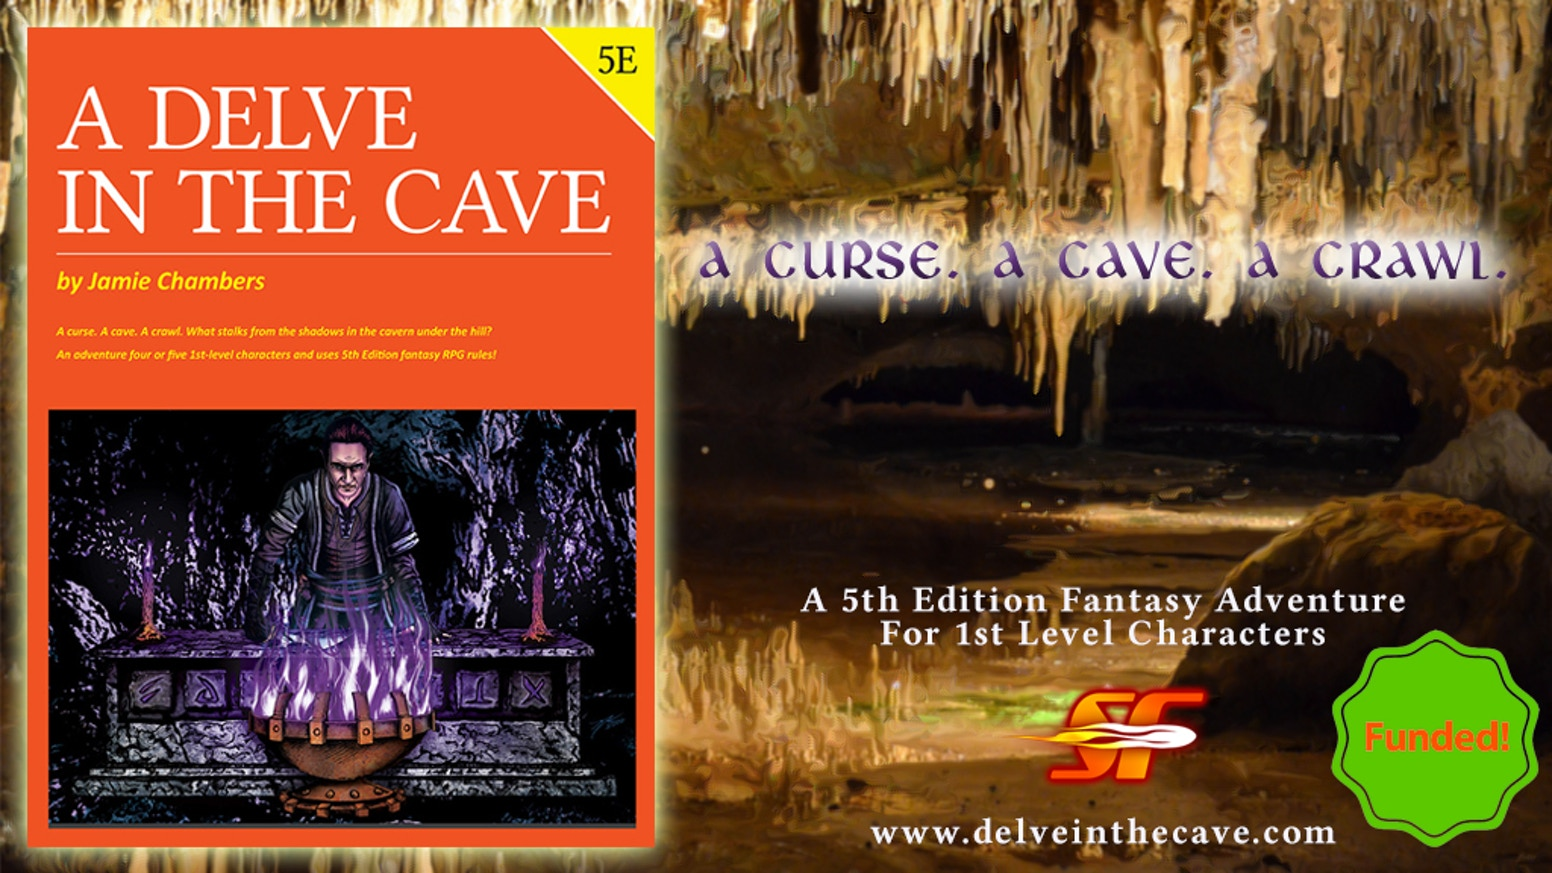 A curse. A cave. A crawl. 1st level scenario for the world's most popular roleplaying game!